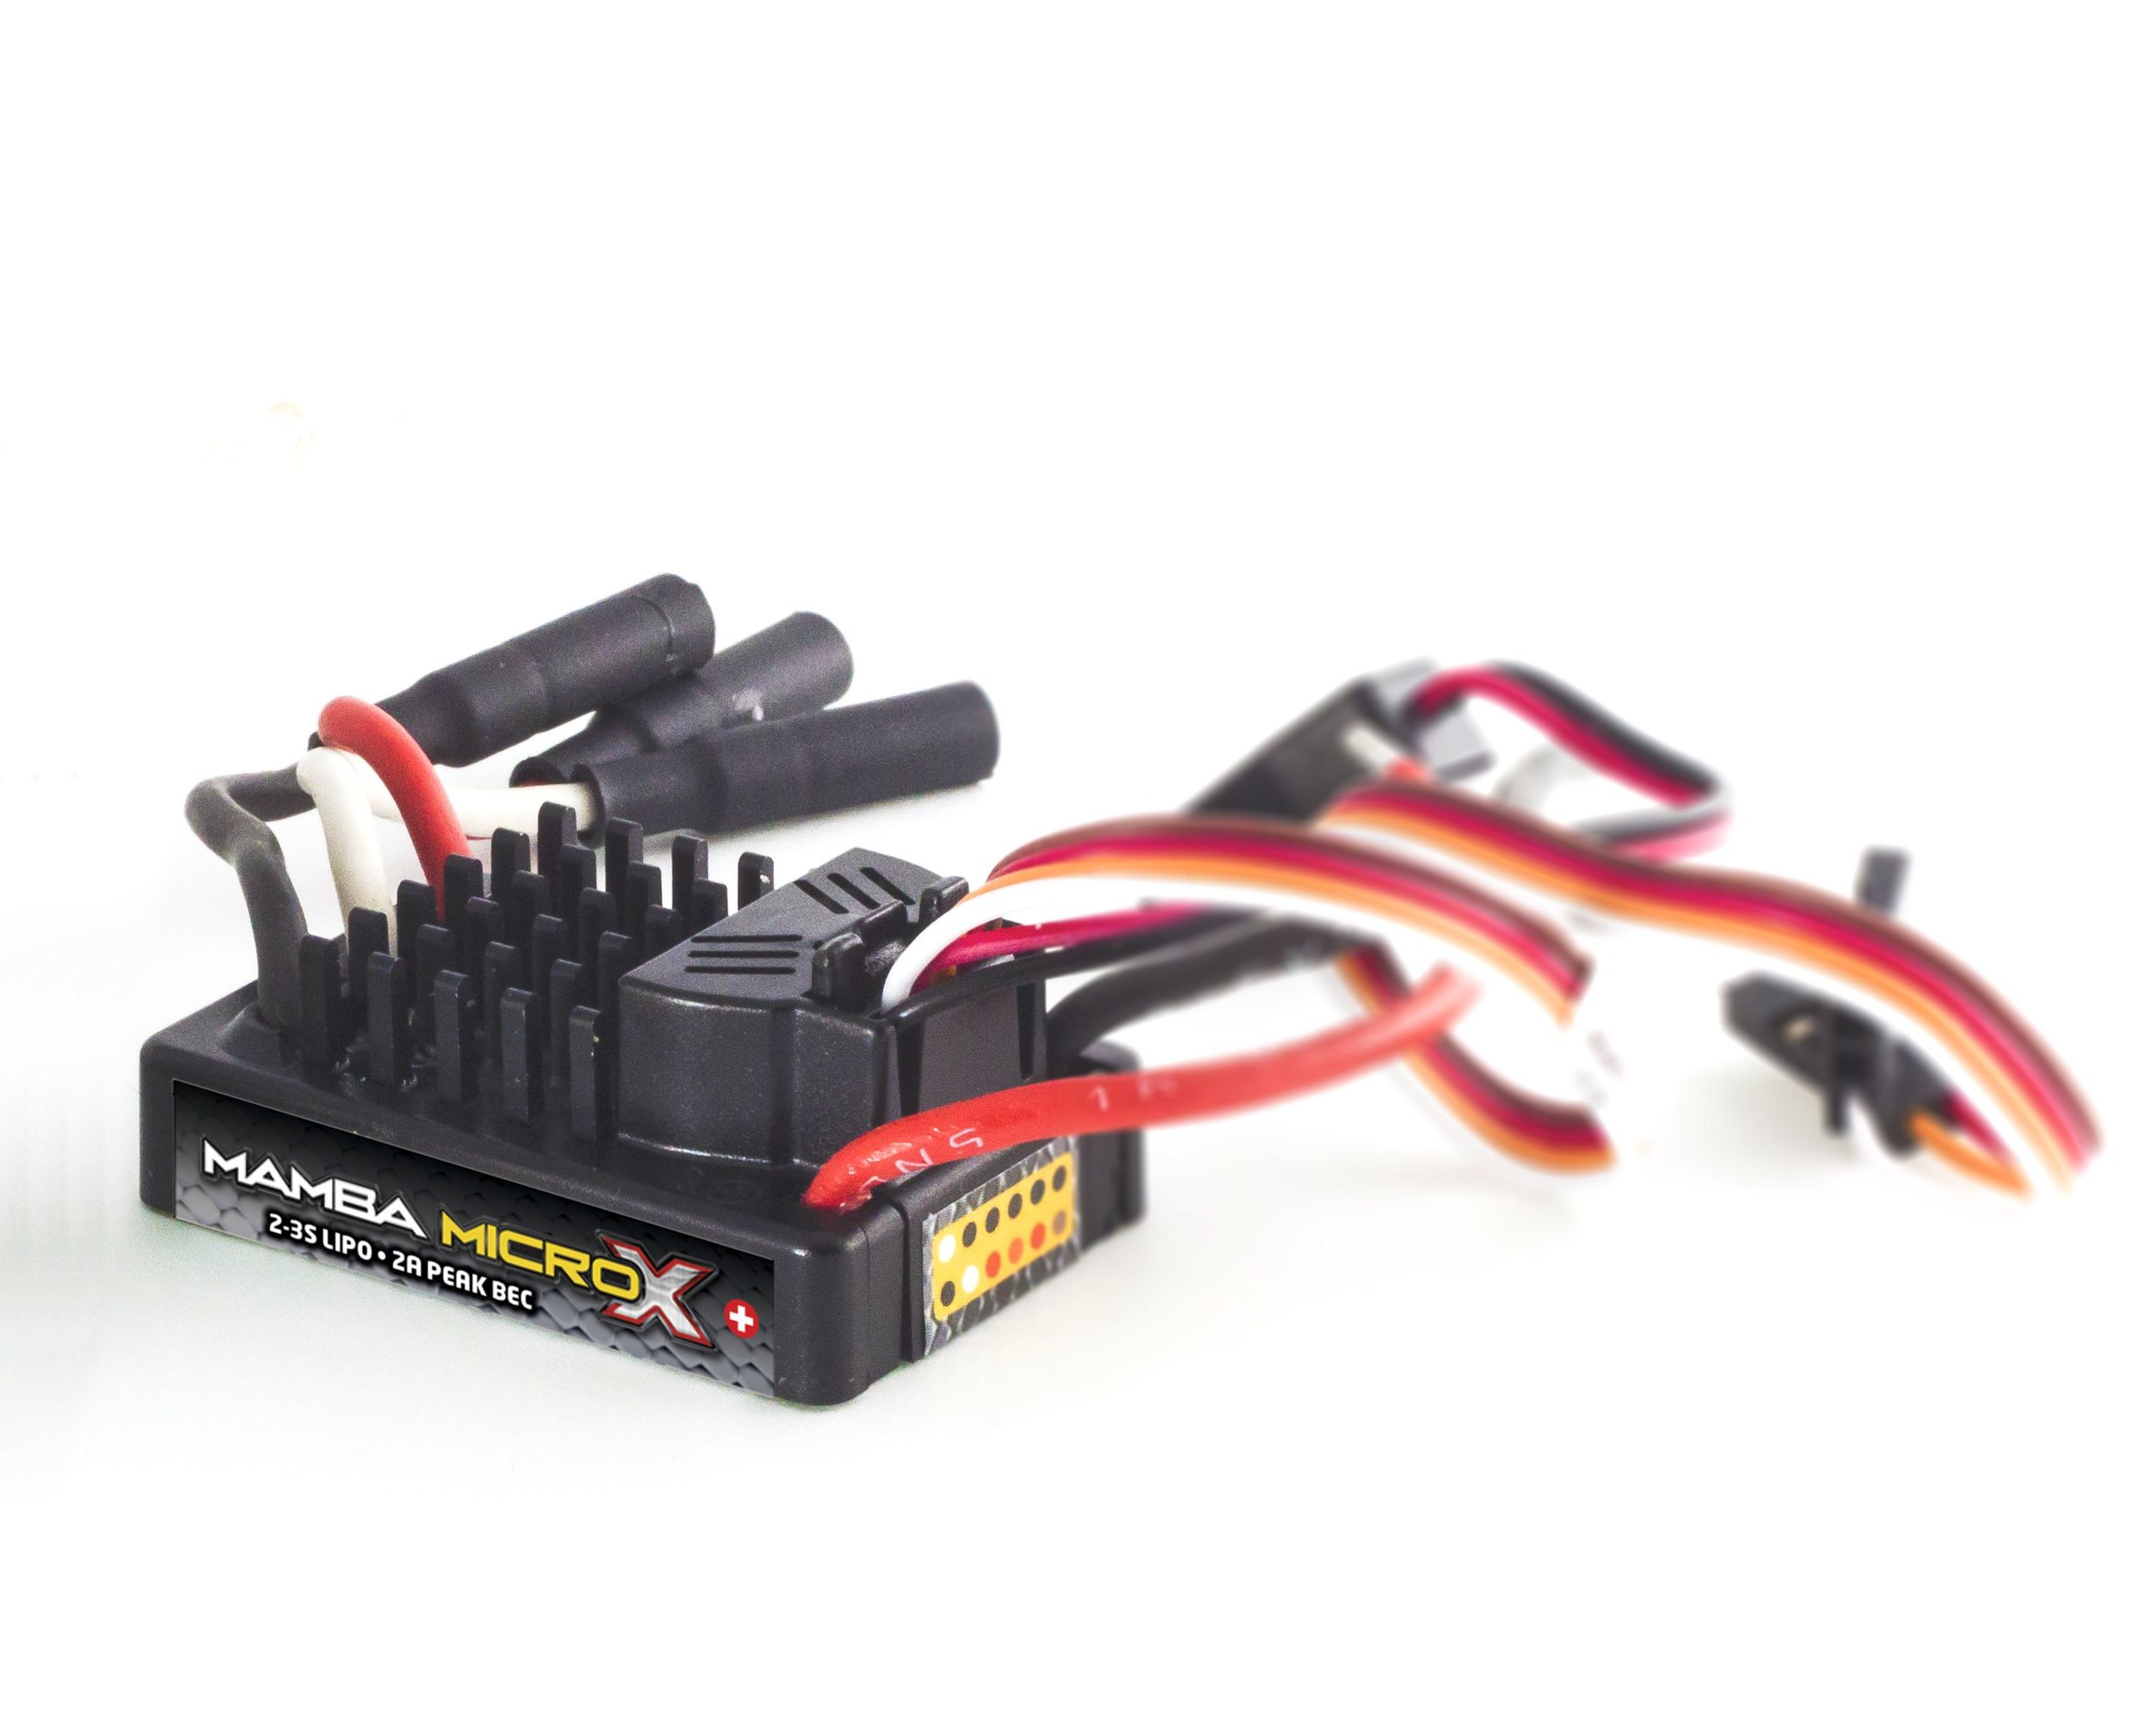 Mamba Micro X - Sensored - Mamba Micro X is our latest 1:18 scale controller capable of 2S - 3S LiPo, with an 2 amp peak BEC - and, it's waterproof*, so you can run your vehicle through morning dew, across soggy snow, or a muddy trail. This is the perfect upgrade for 2WD or 4WD vehicles over 1.5 lbs and up to 2.25 lbs. The Mamba Micro X also works well in some 1/10th scale crawlers. Paired with a 2200kv Holmes Hobbies Puller Pro Stubby 2200kv it makes a great crawler ESC!